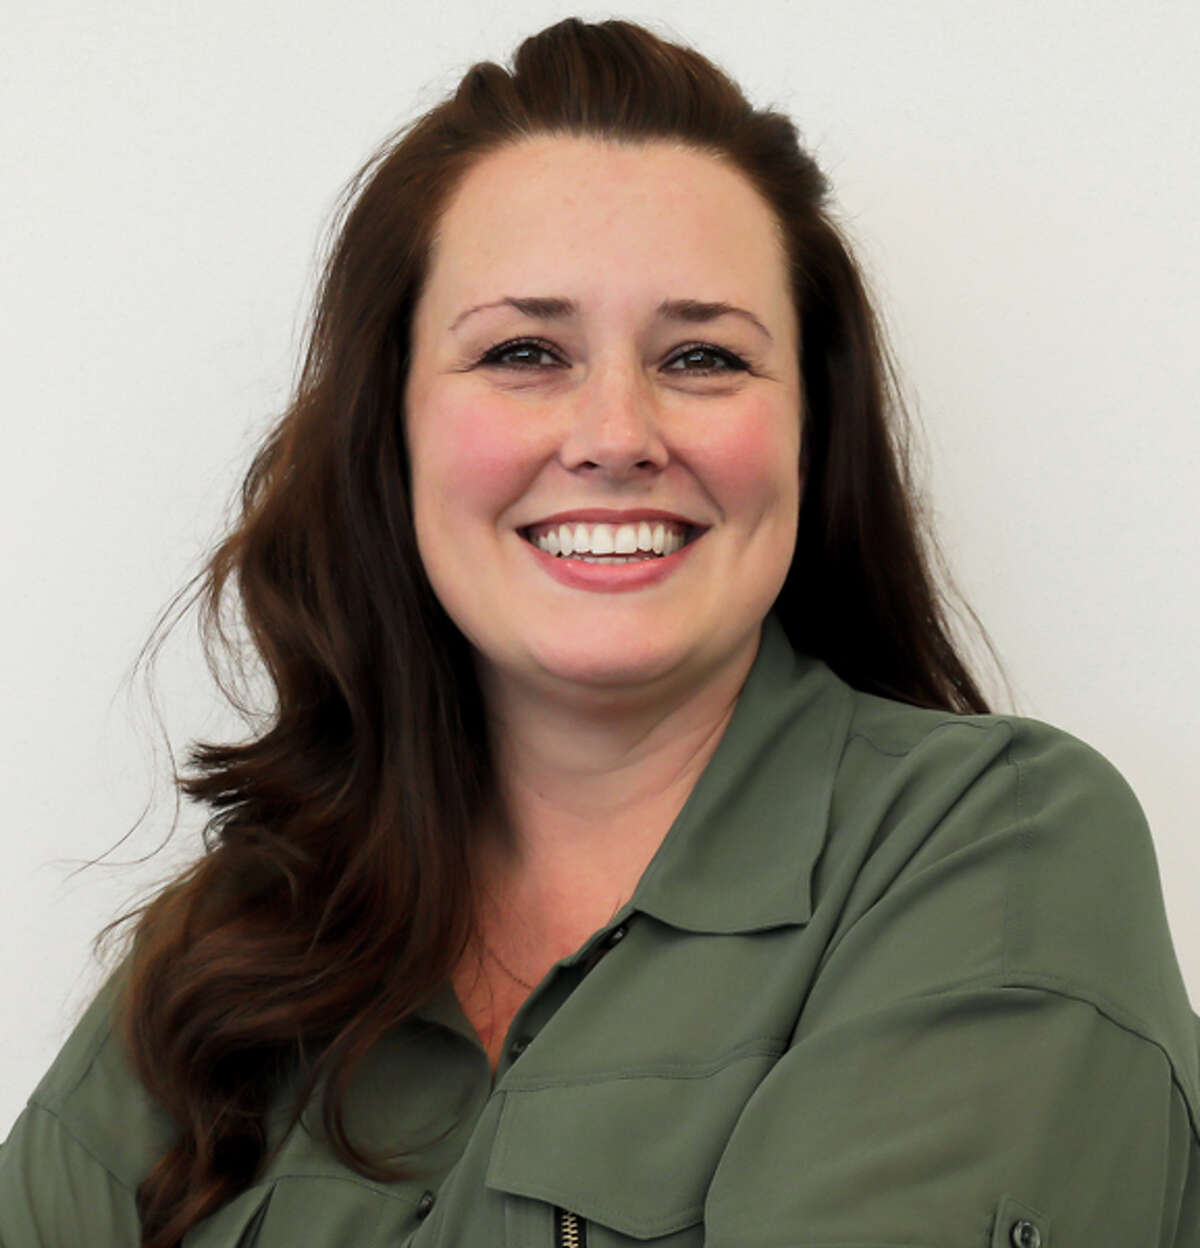 Kristen McDade has joined Berkadia as senior director in its Houston office. McDade, who specializes in land brokerage, will serve on the investment sales team.